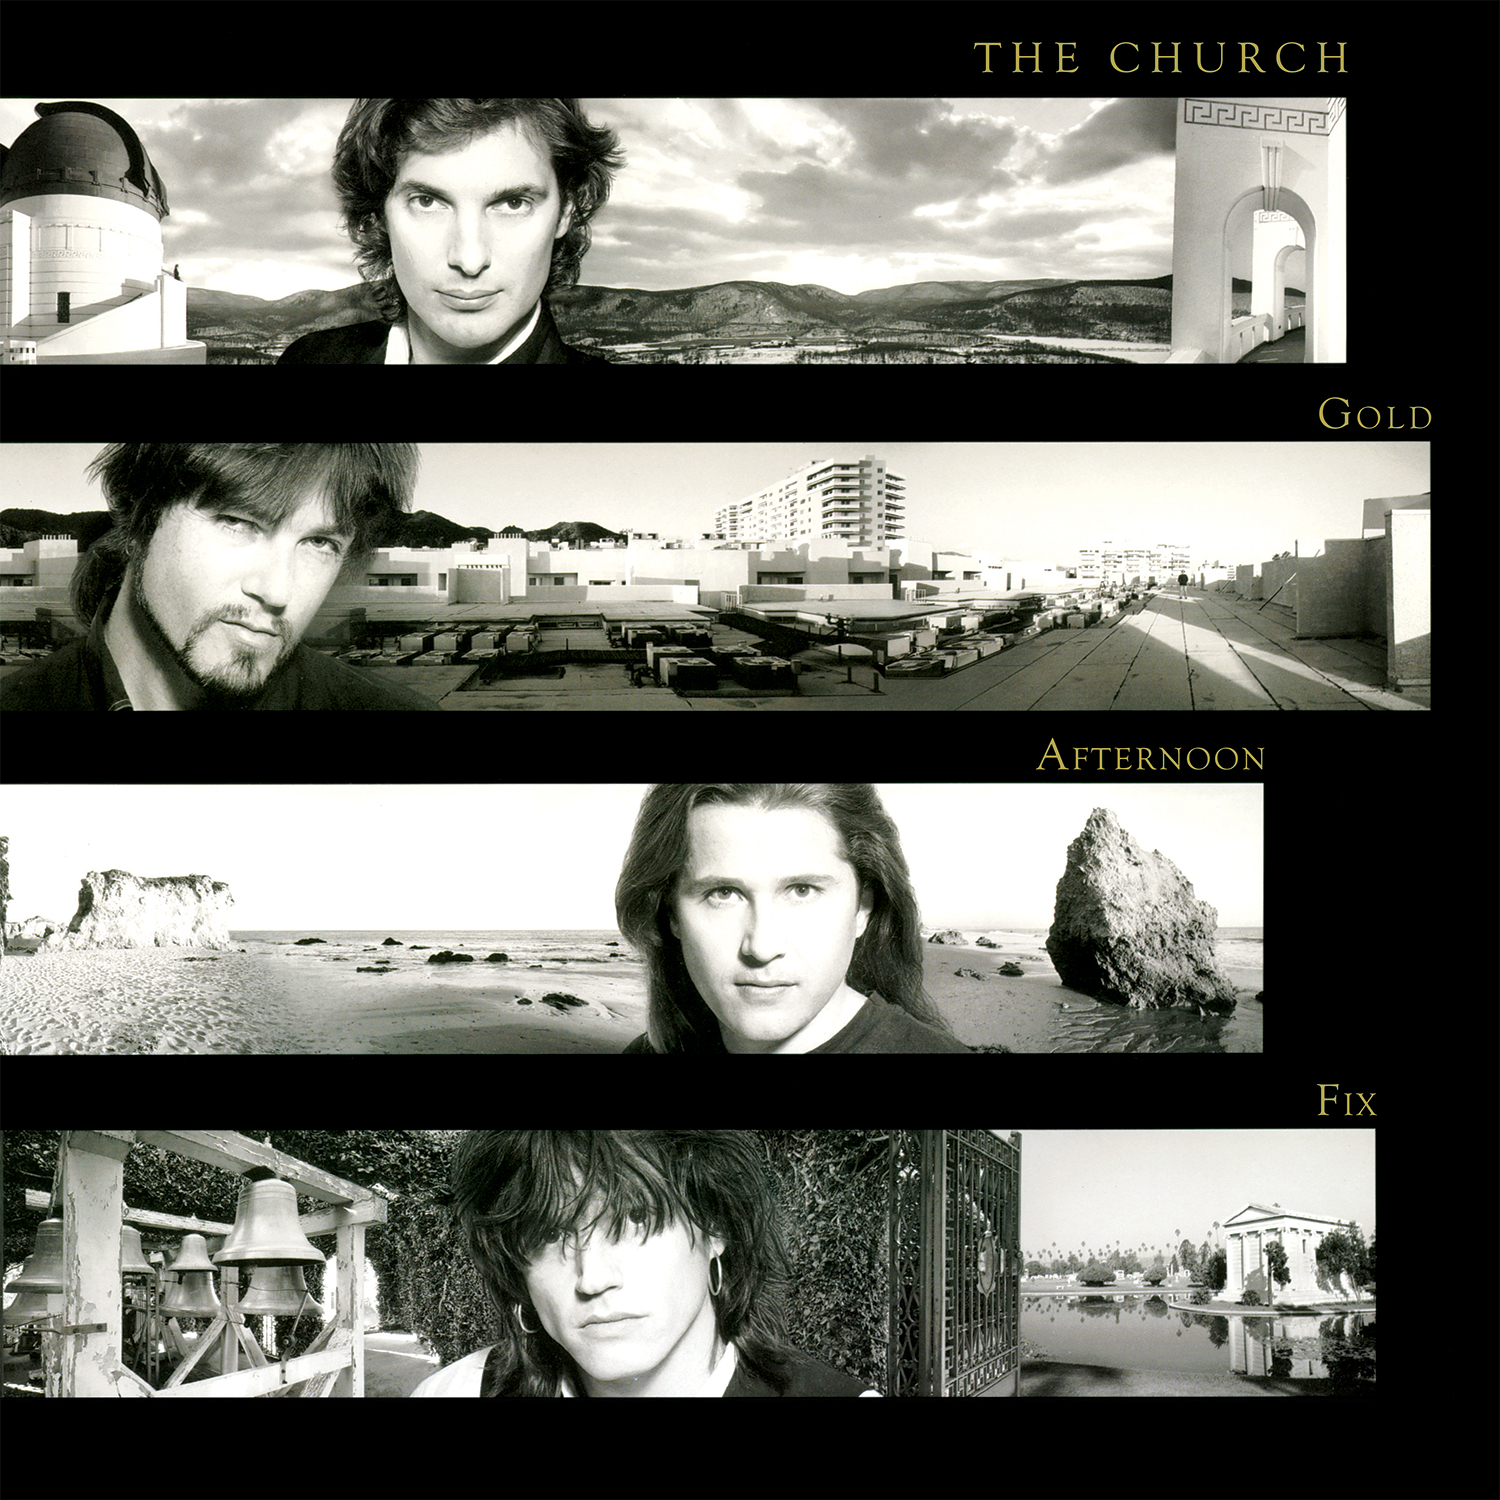 The Church - Gold Afternoon Fix [RSD Drops Oct 2020]